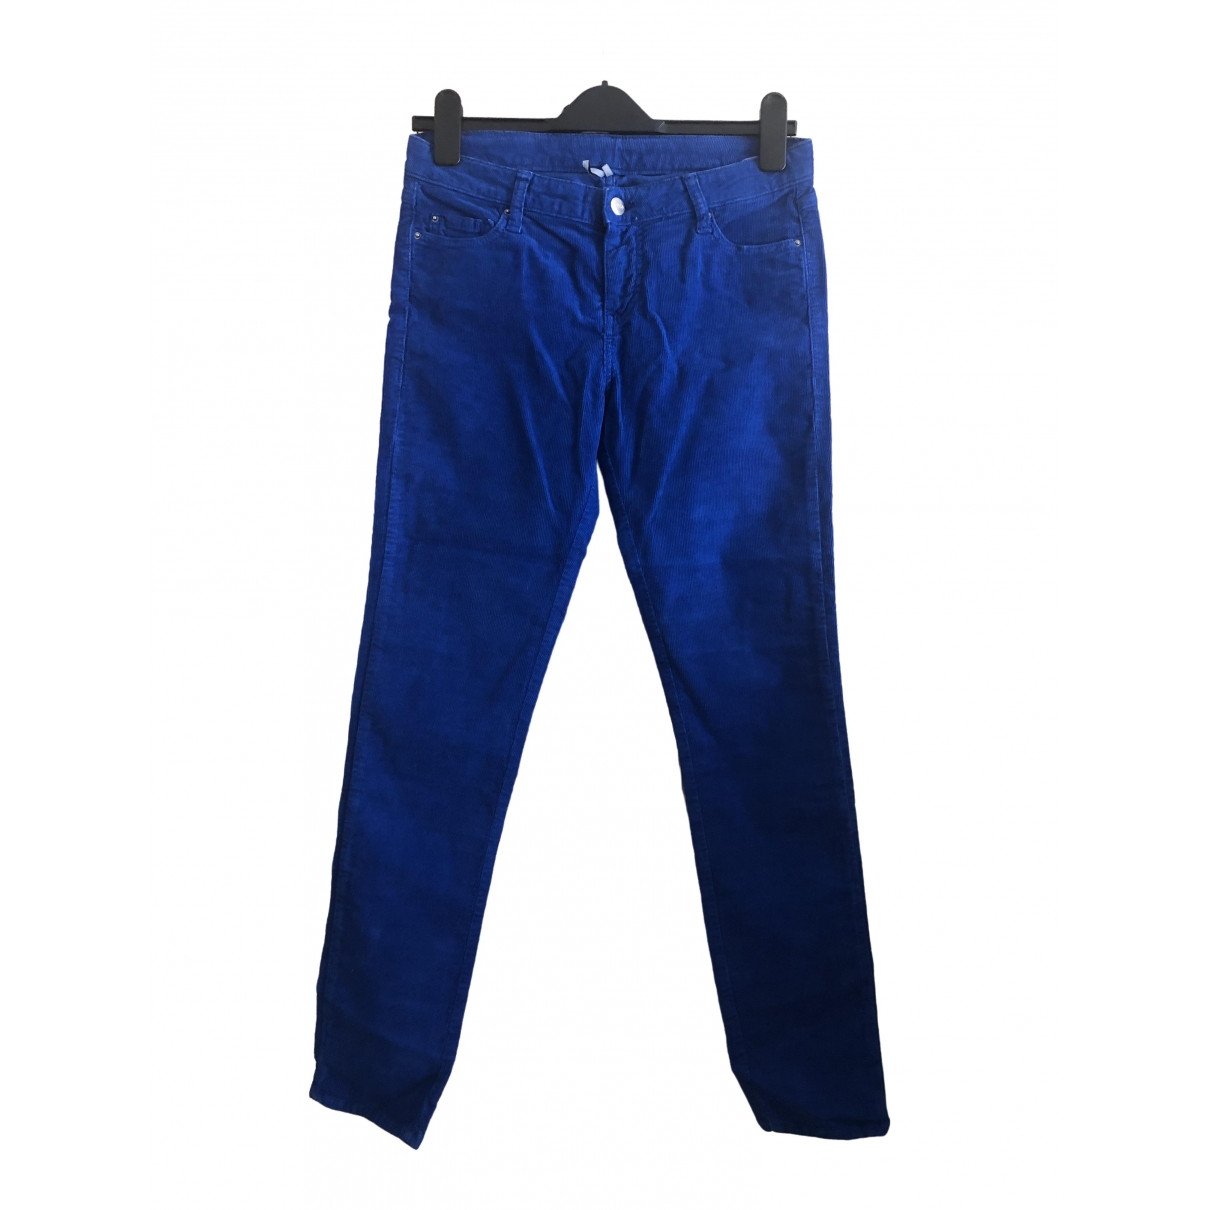 Iro \N Blue Cotton Jeans for Women 29 US